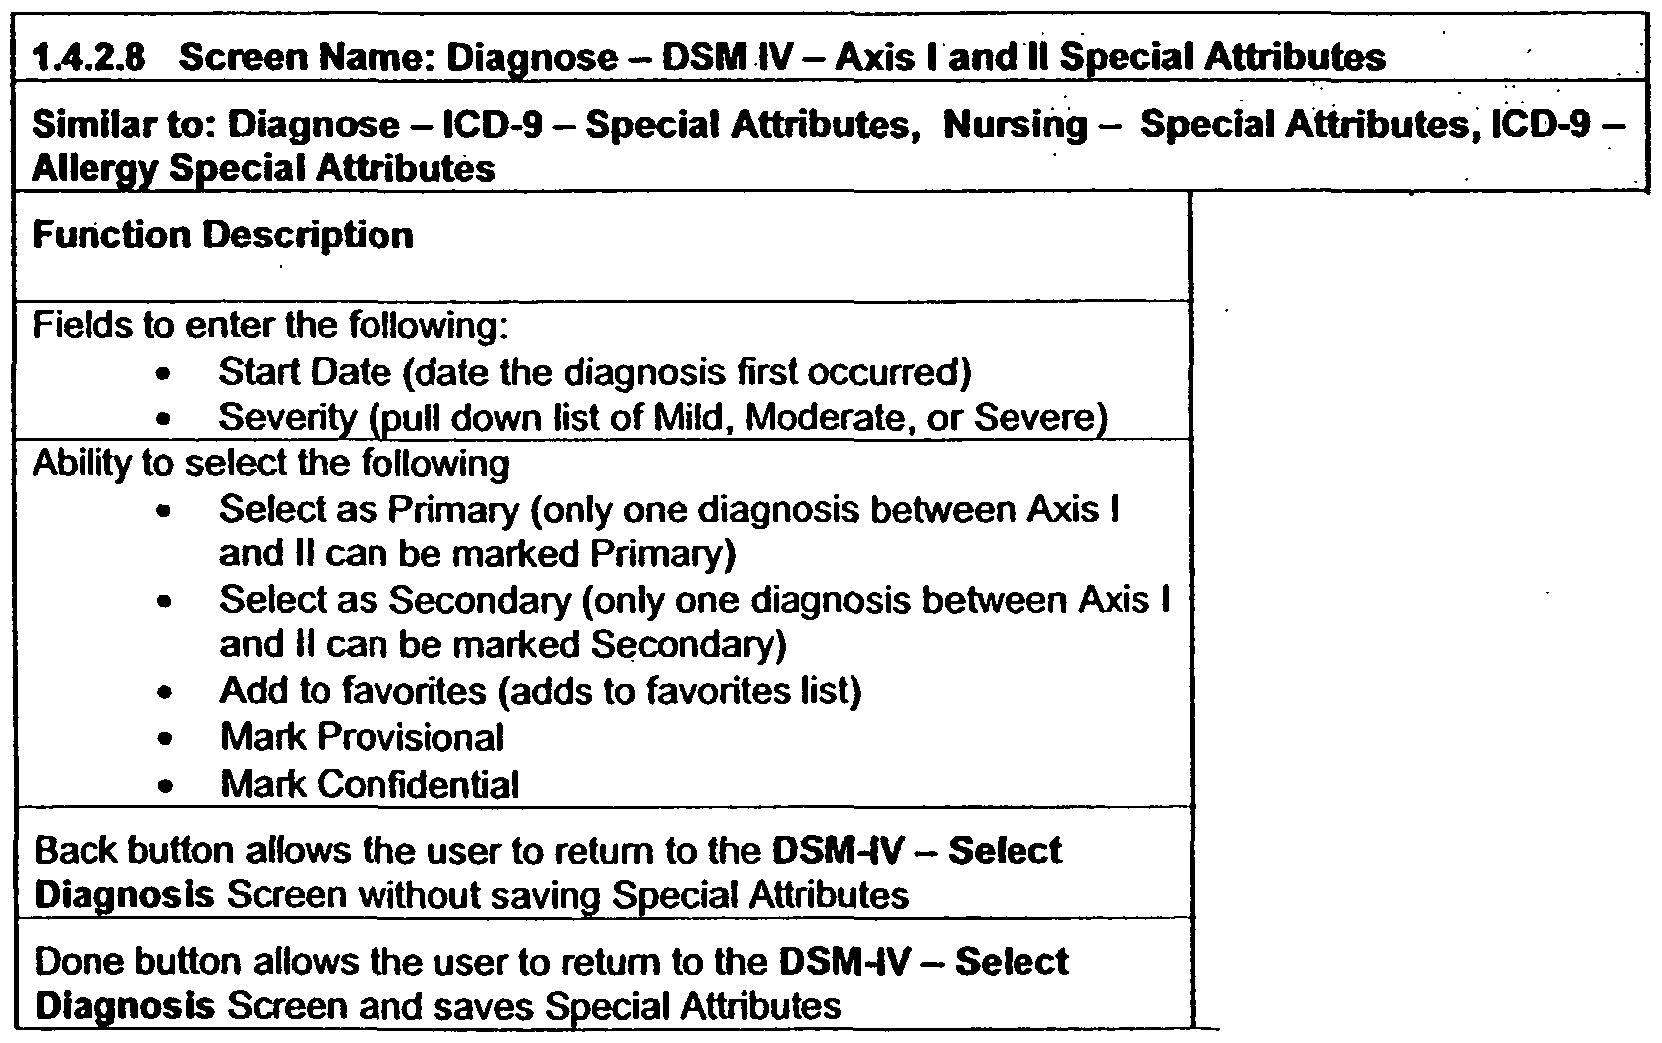 Icd 10 furthermore dsm axis iv ex les moreover dsm 5 diagnostic